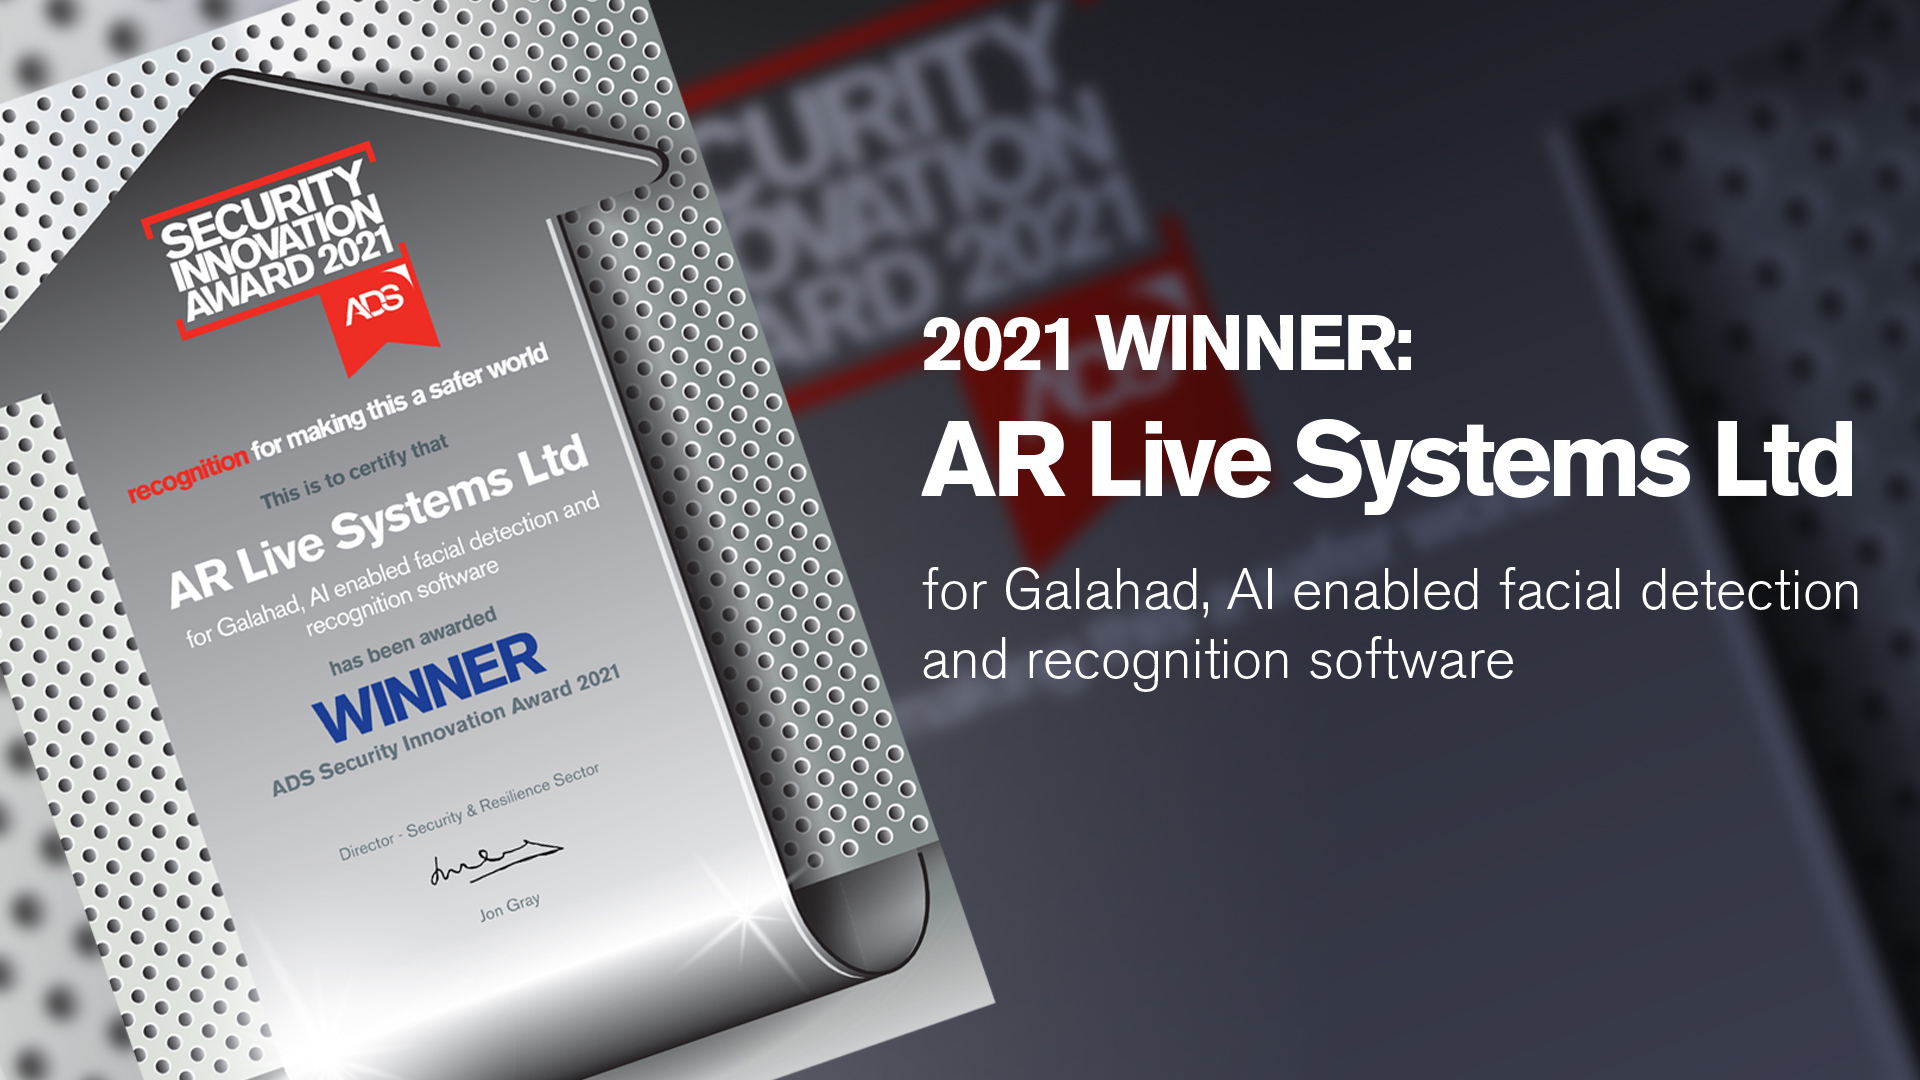 WINNER AR Live Systems Ltd Slide